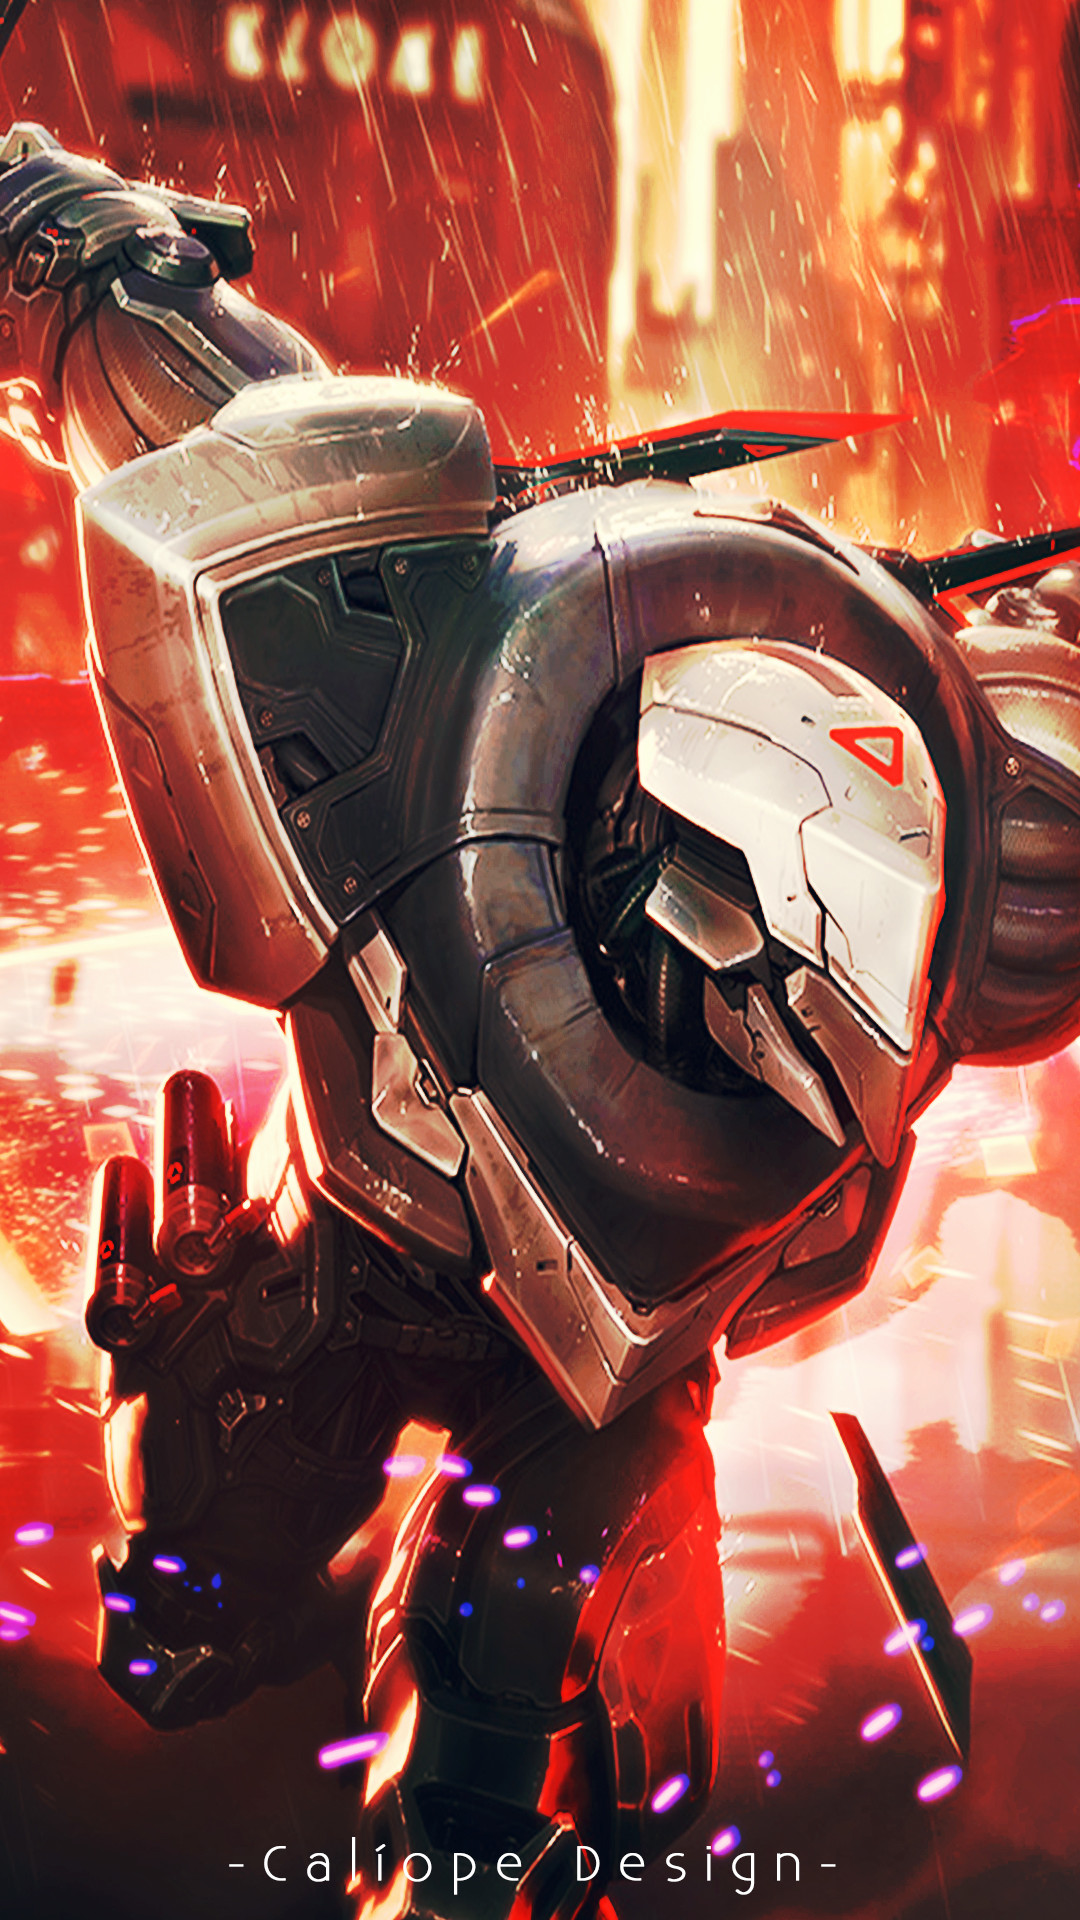 … Wallpaper Para Celular – Project Zed by MissCaliope